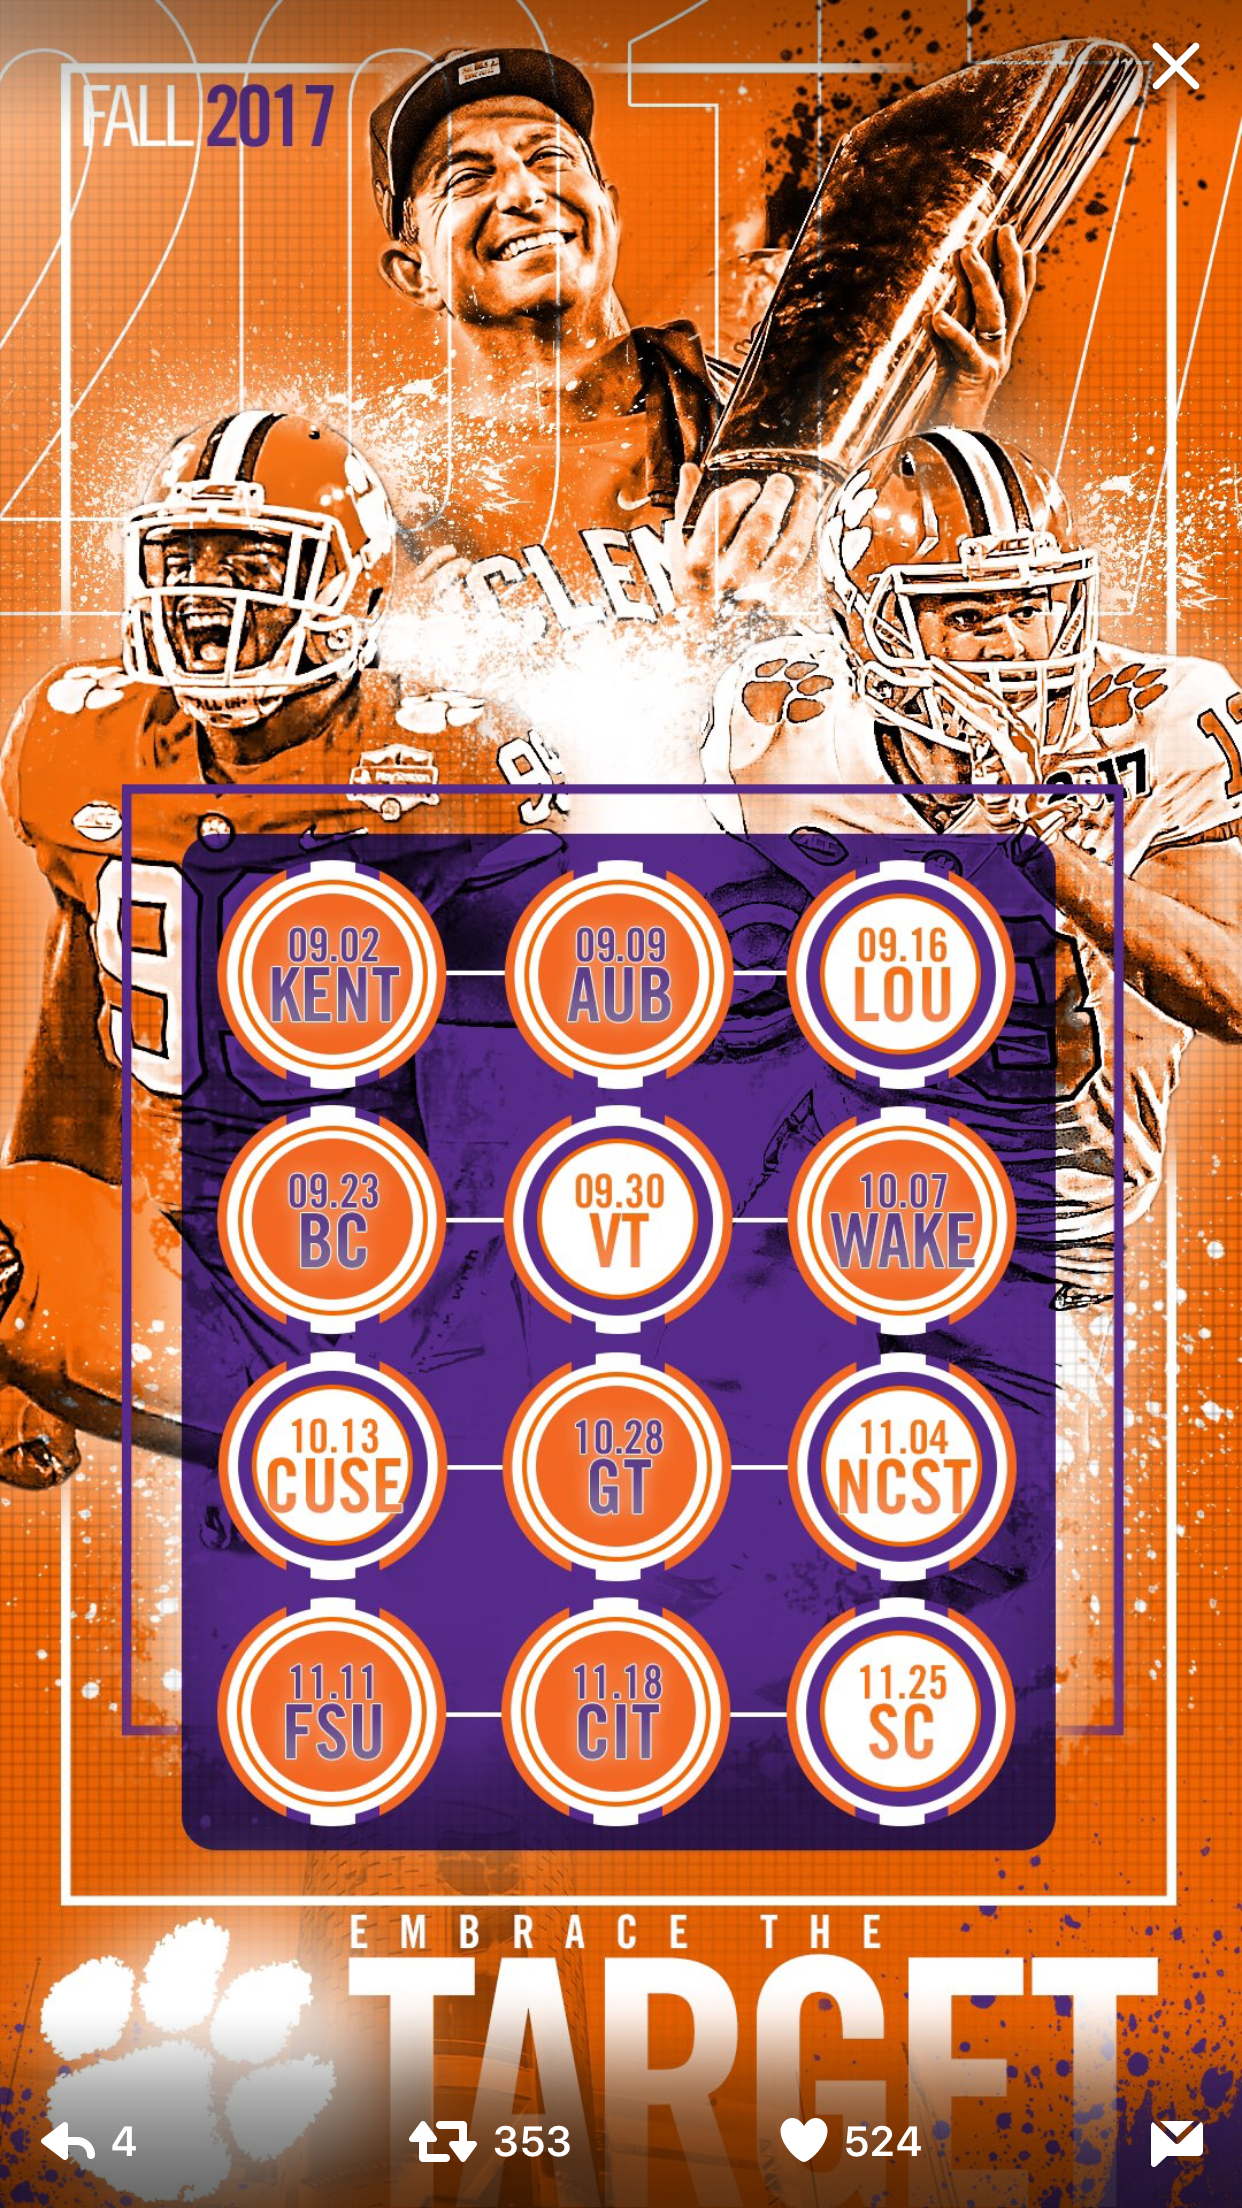 Pin By Nancy Ulmer On Iphone Backgrounds Clemson Football Clemson Tigers Football Clemson